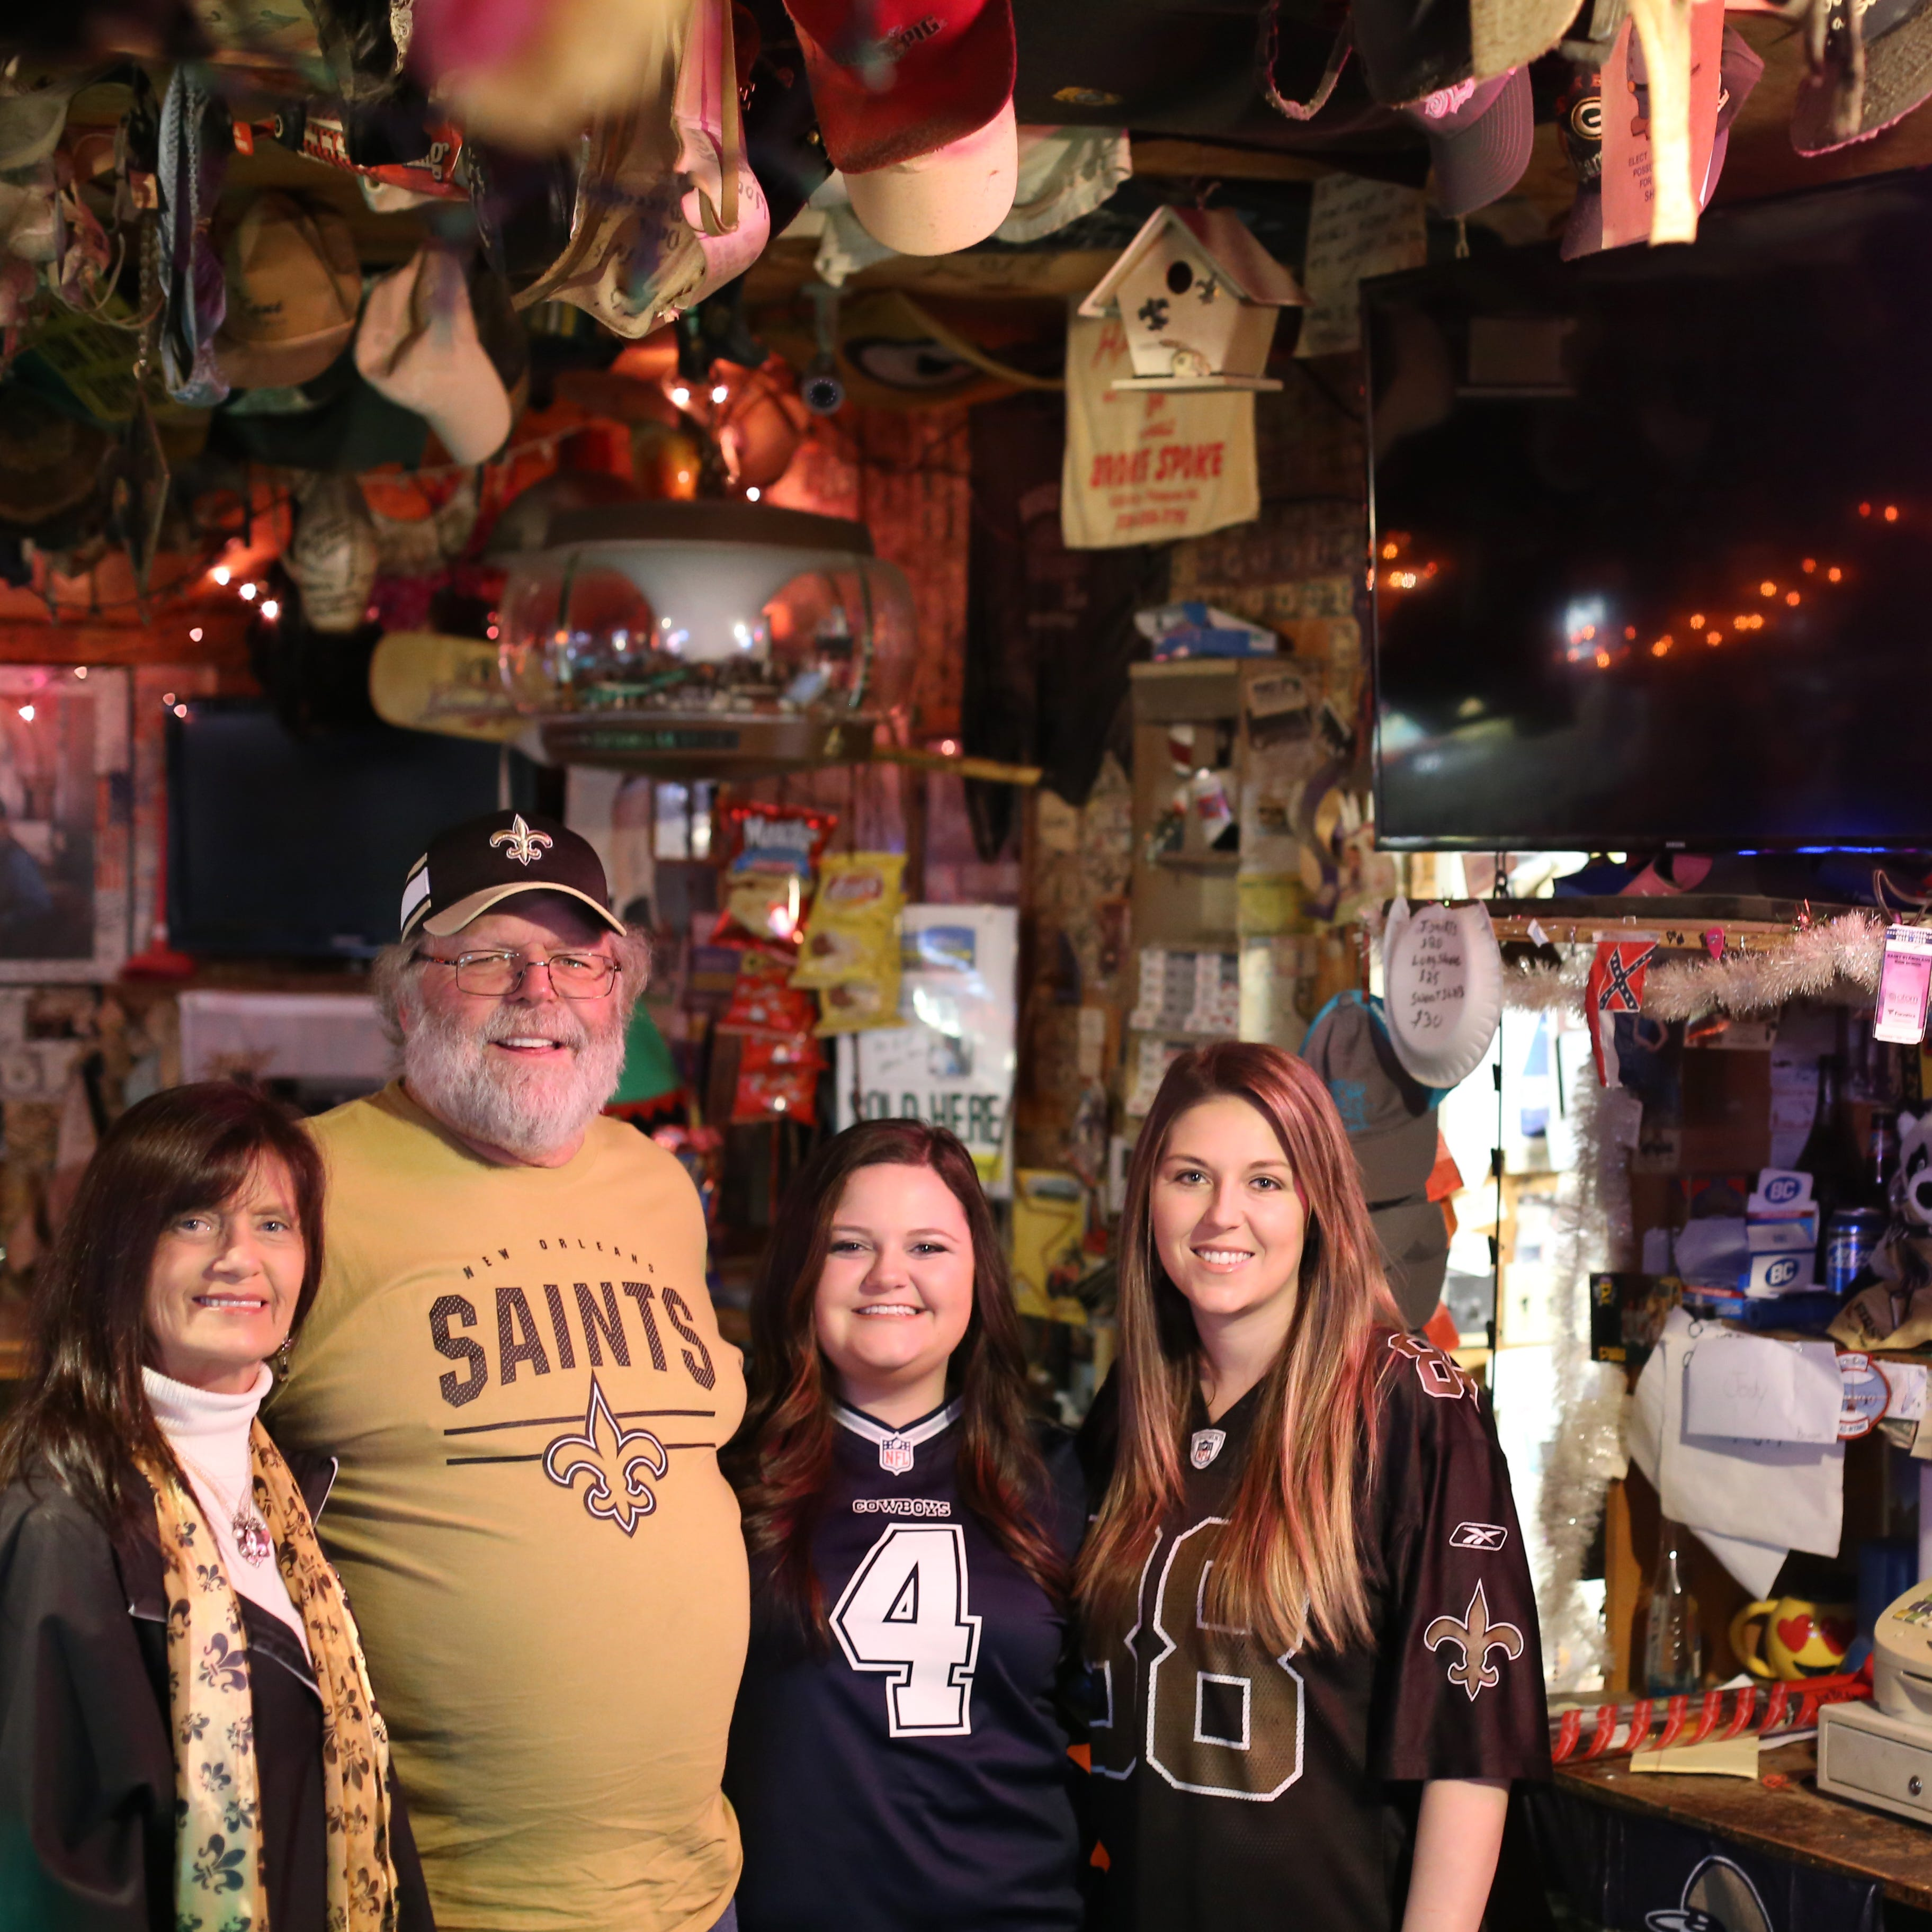 A biker bar, Brett Favre and the Who Dat Nation: Football is life in this rural Miss. town